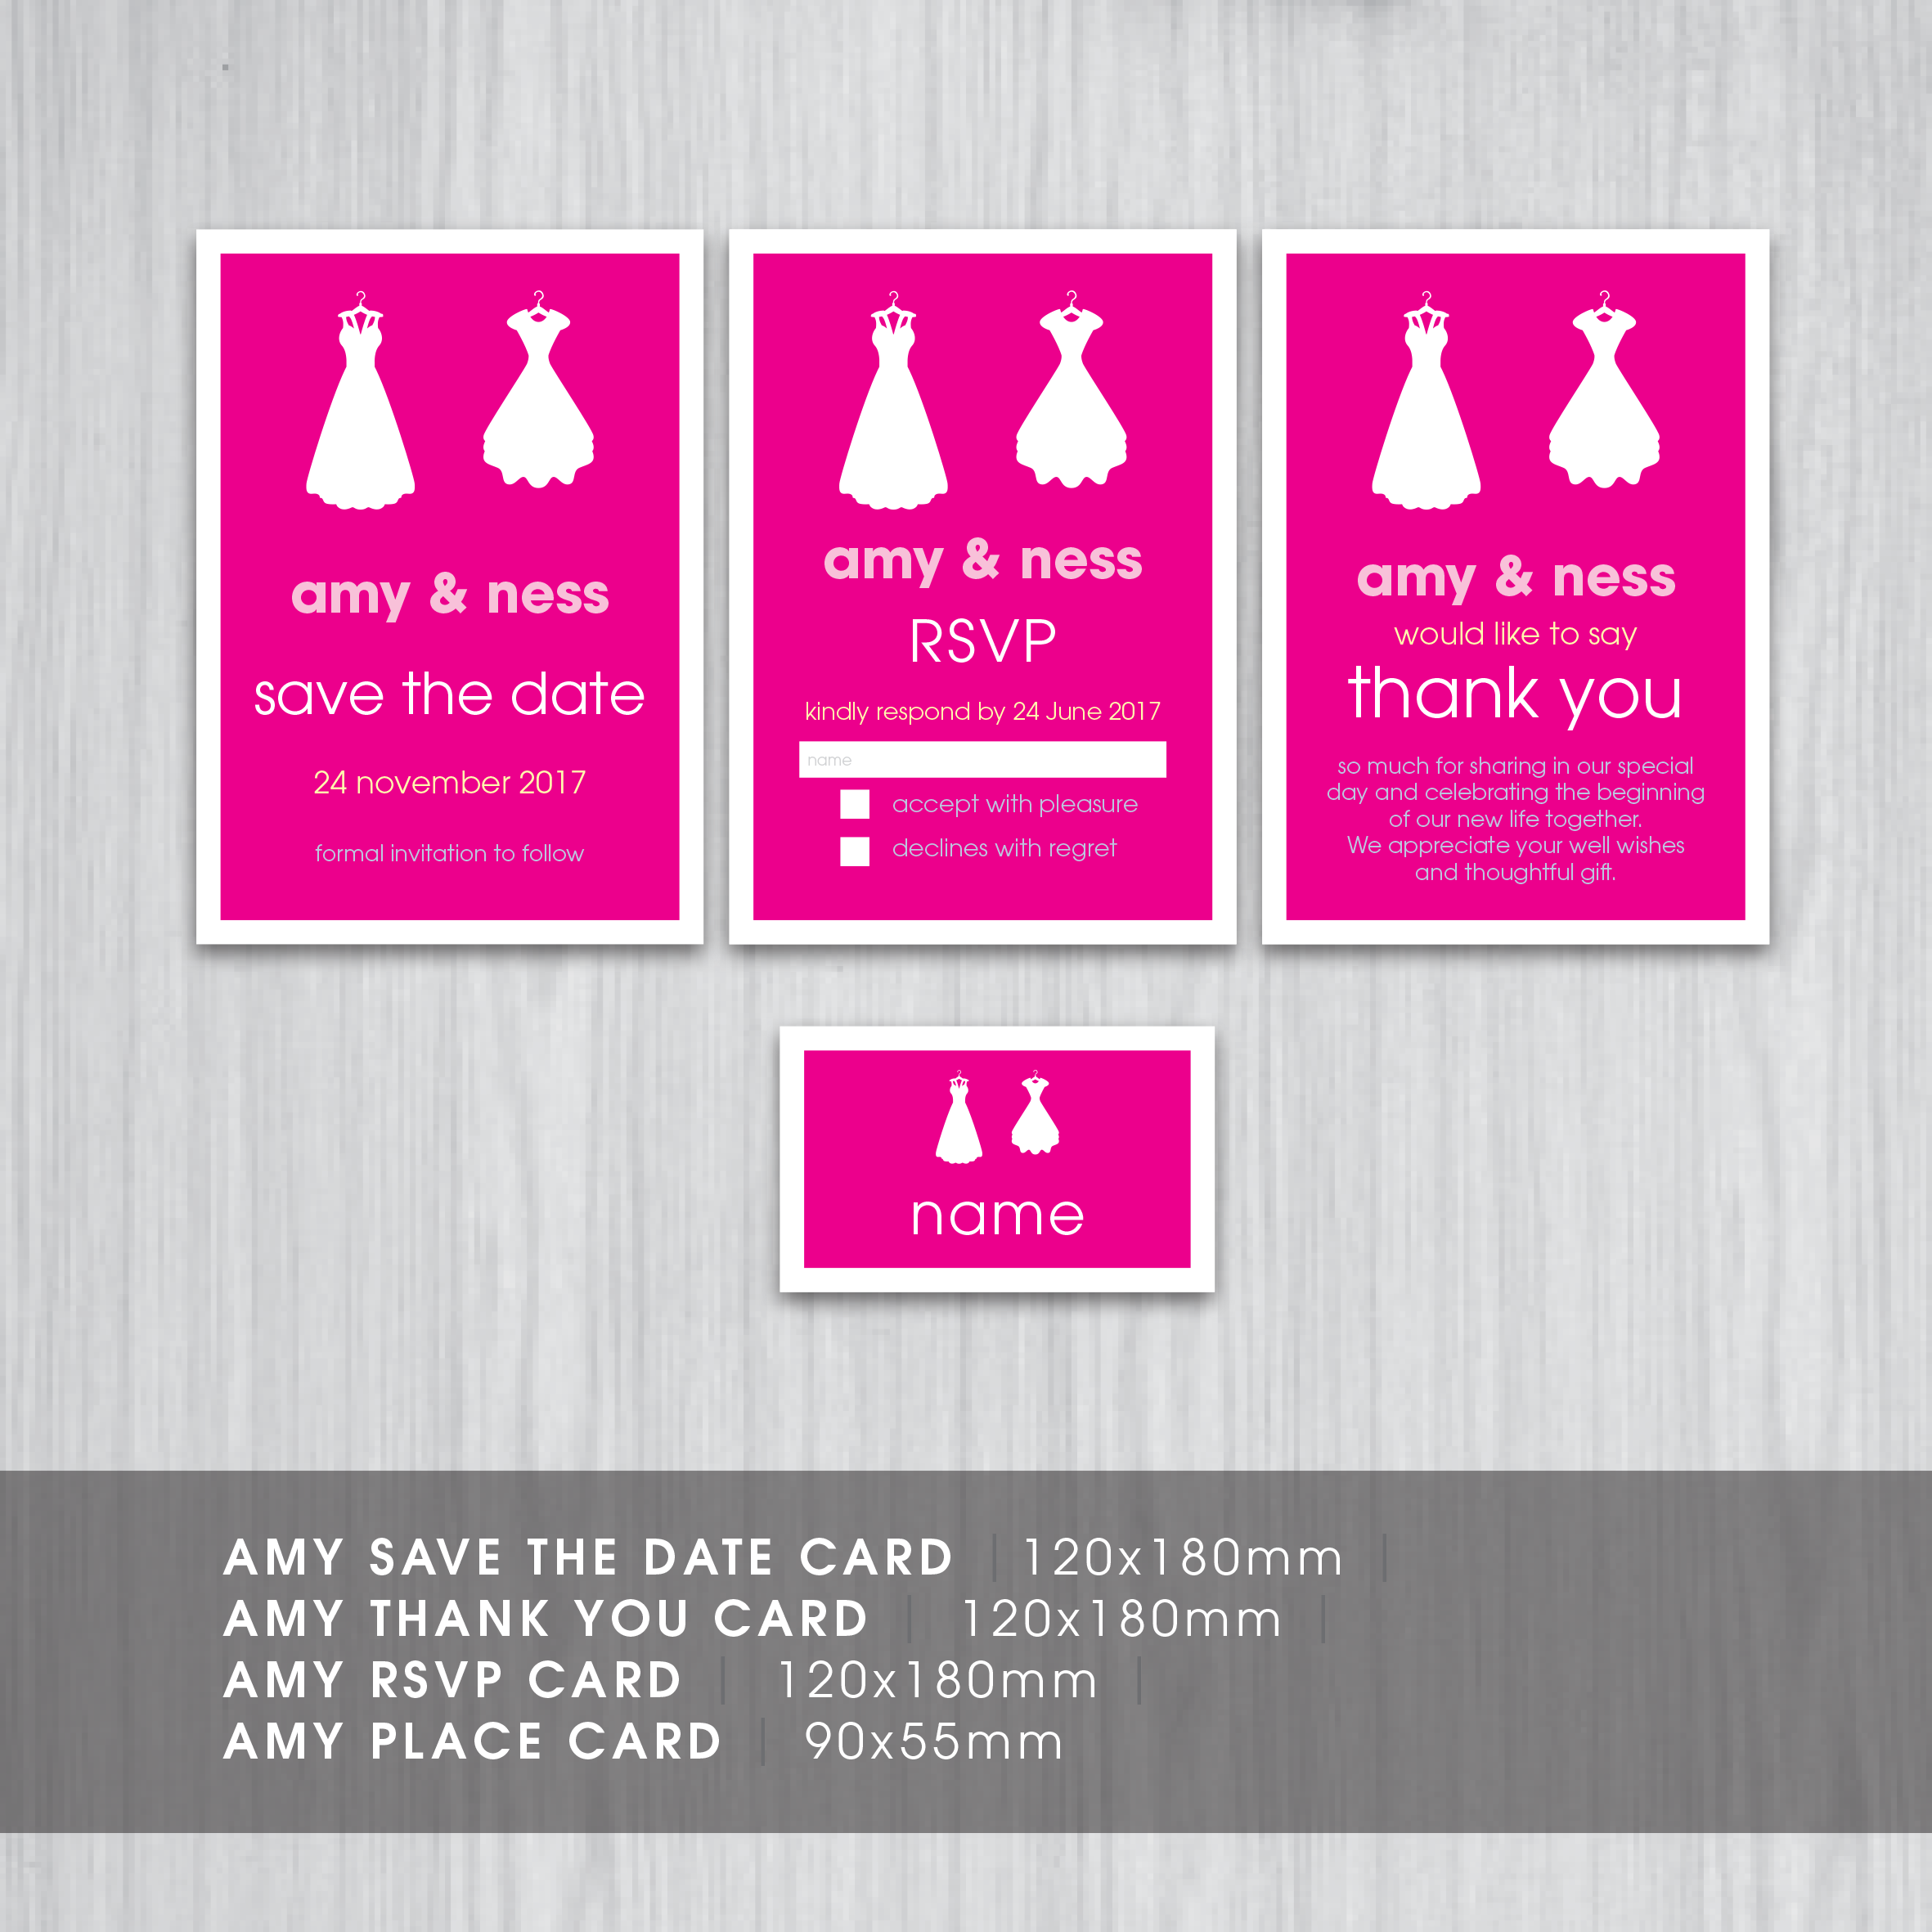 Wedding-Invites-Webpage-layout-4